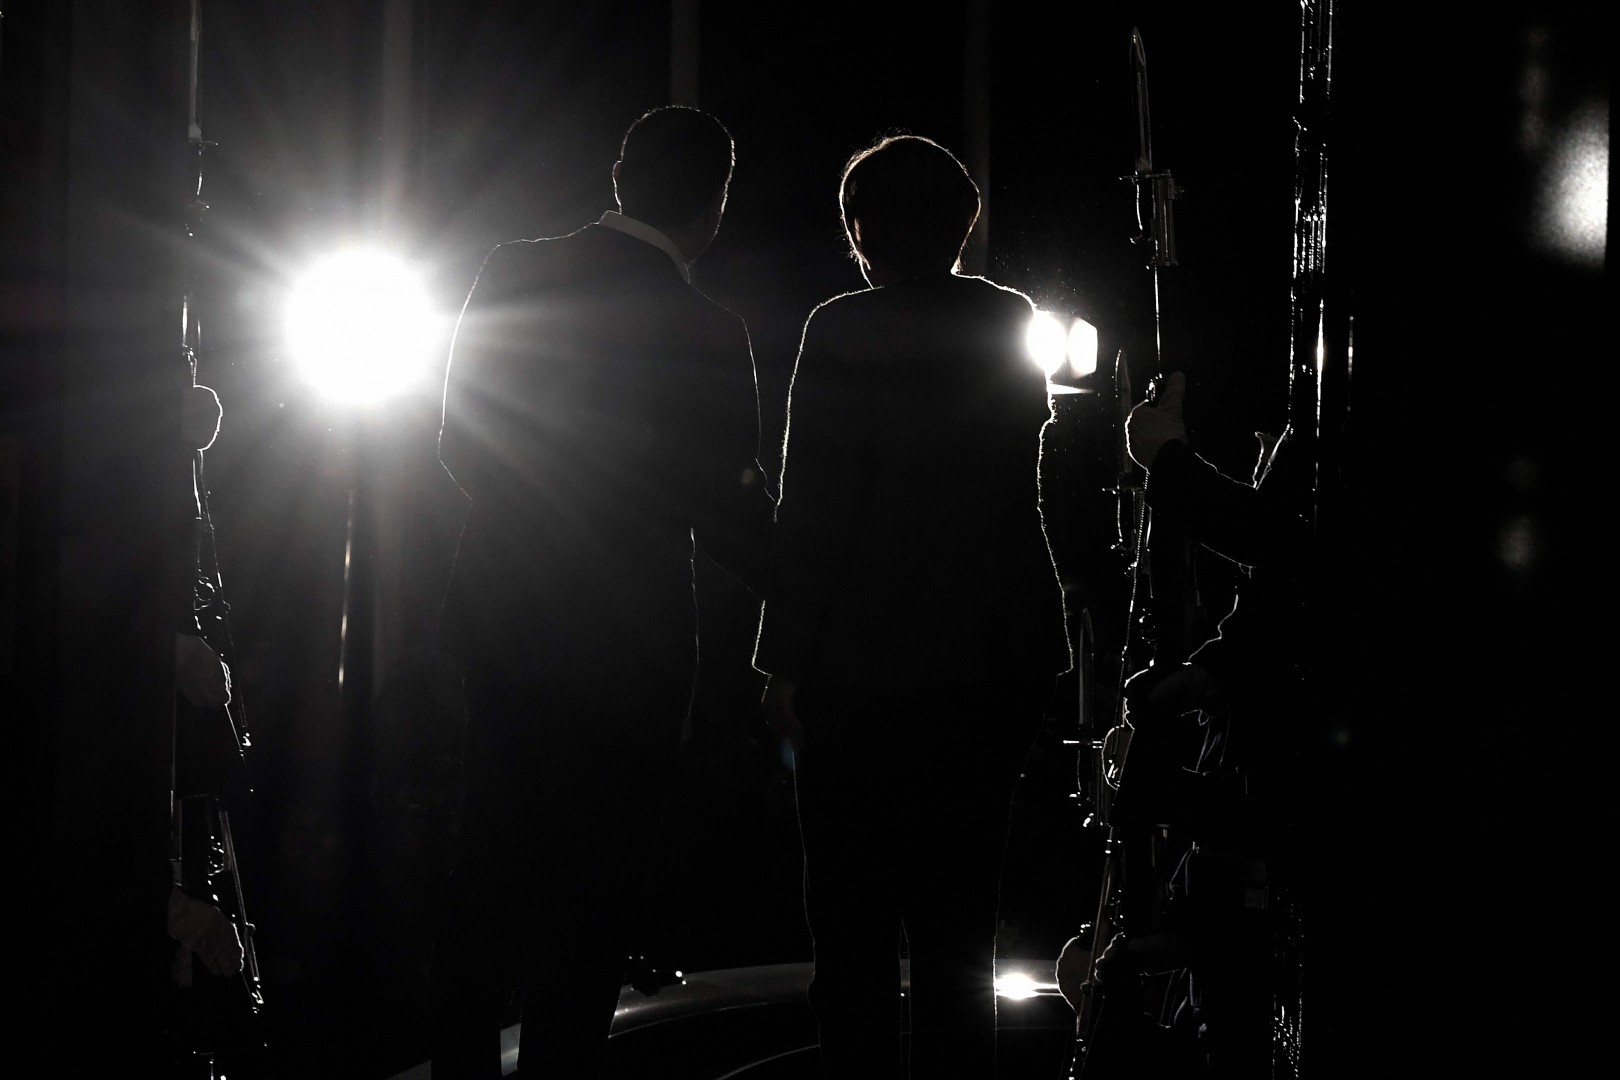 Greek Prime Minister Alexis Tsipras (R) and German Chancellor Angela Merkel are seen in silhouette while shaking hands upon Merkel's arrival in Athens on January 10, 2019. - German Chancellor Angela Merkel arrived in Greece amid tight security on January 10, 2019, as she looks to turn the page on the biting austerity measures that sparked major protests during her last official visit to Athens in 2014. (Photo by Louisa GOULIAMAKI / AFP)